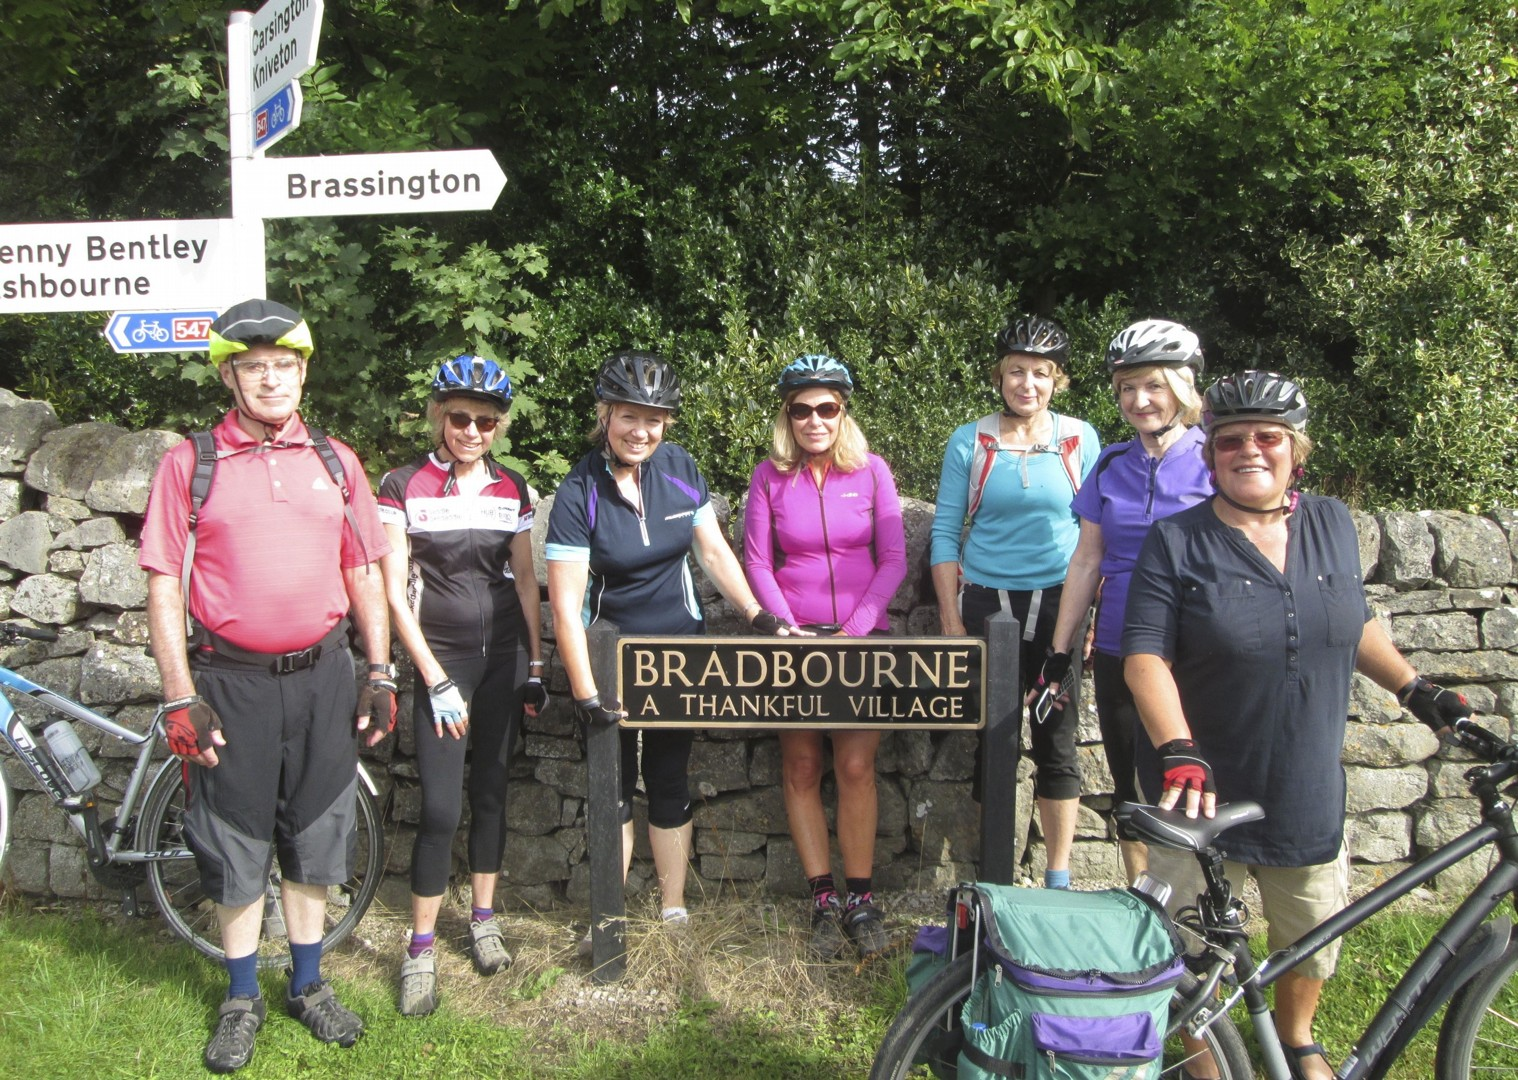 leisure-cycling-holiday-dovedale-cyclists.jpg - UK - Derbyshire Dales - Dovedale - Guided Leisure Cycling Holiday - Leisure Cycling